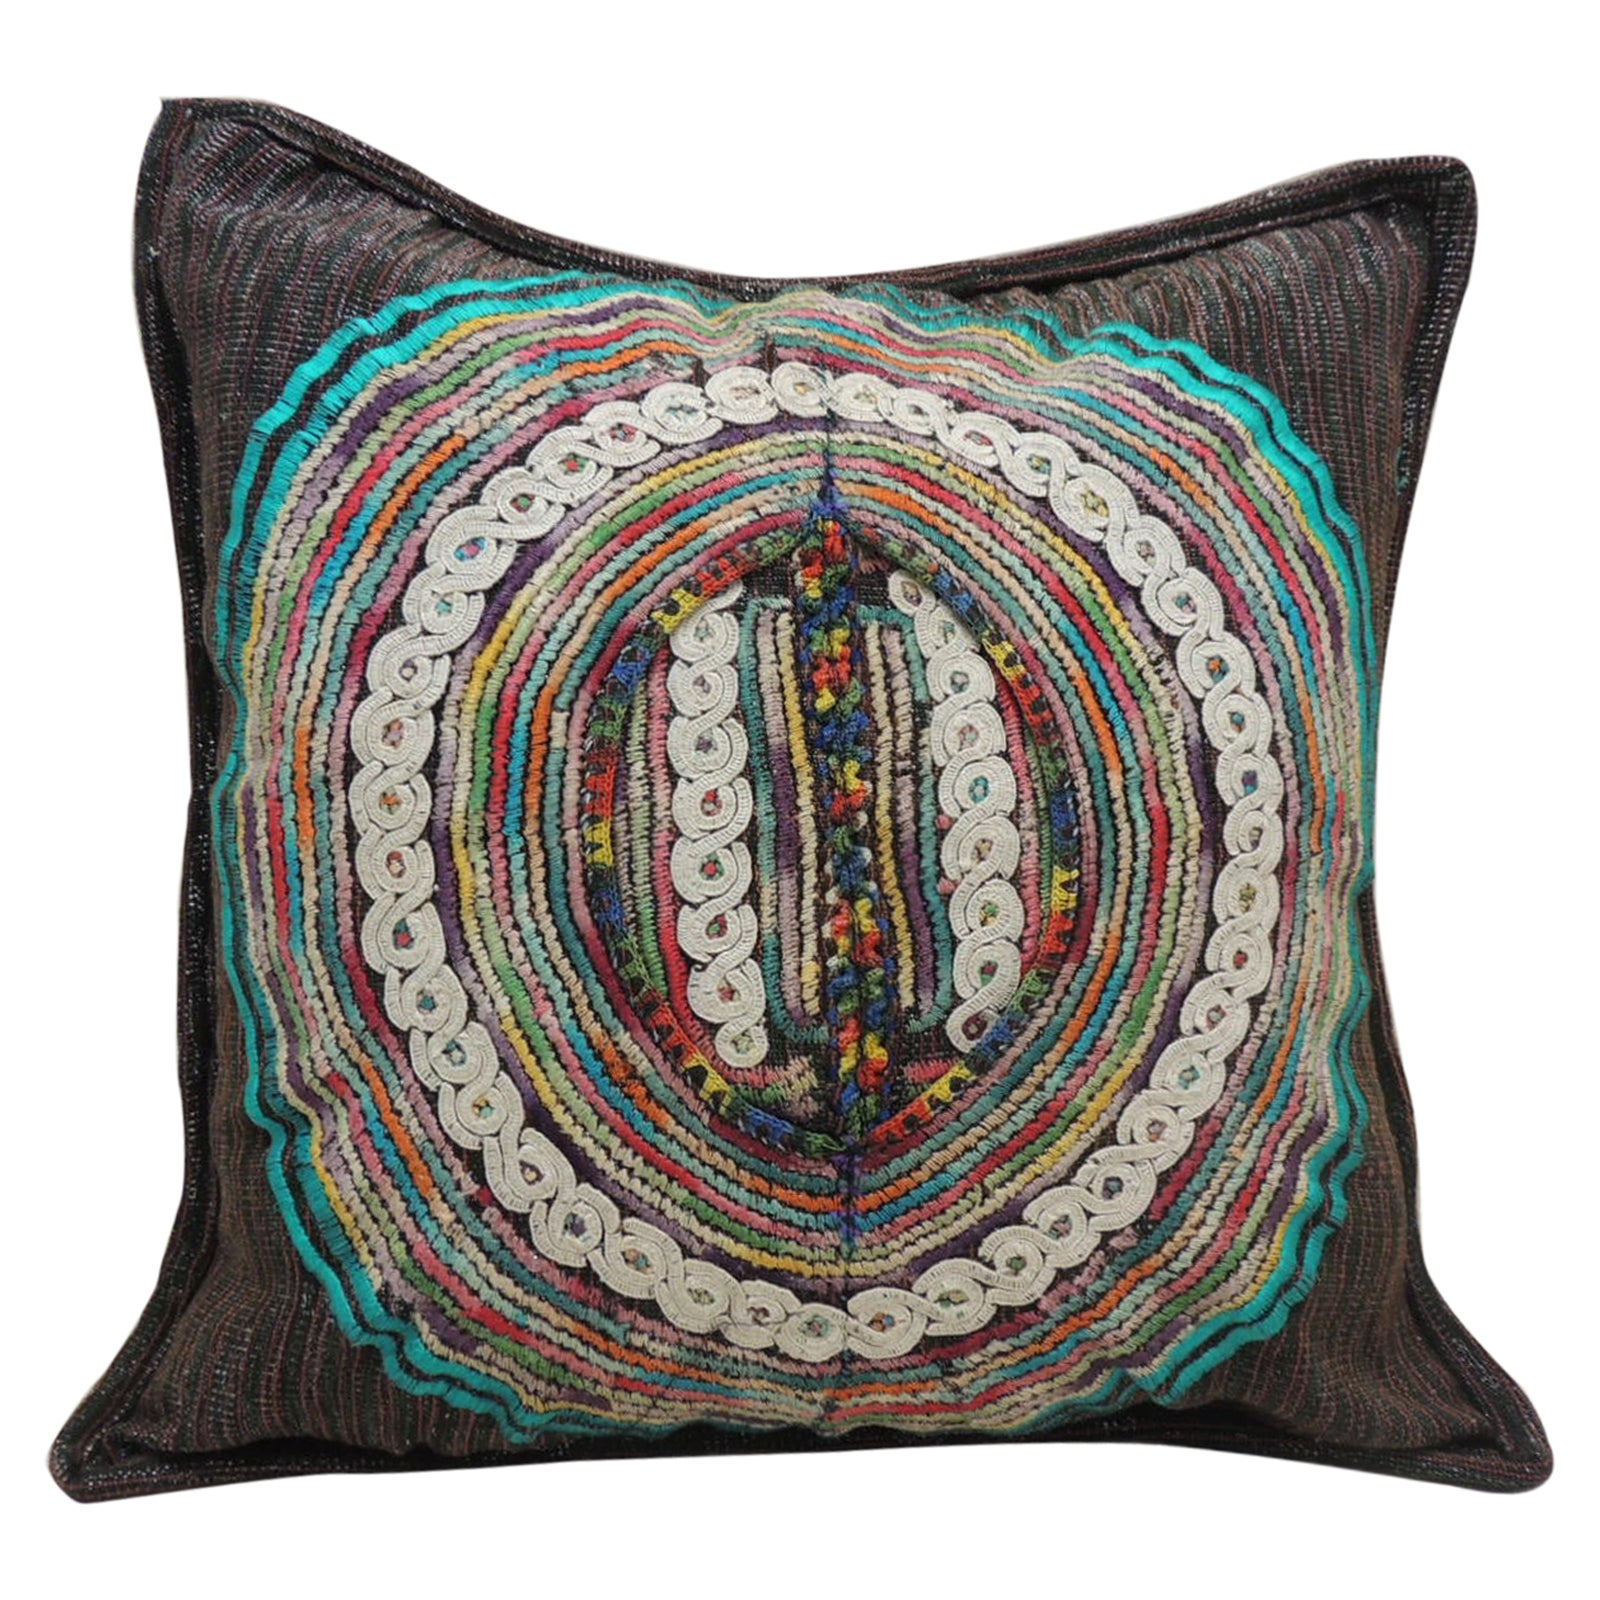 Large Black and Aqua Guatemalan Embroidered Square Decorative Pillow